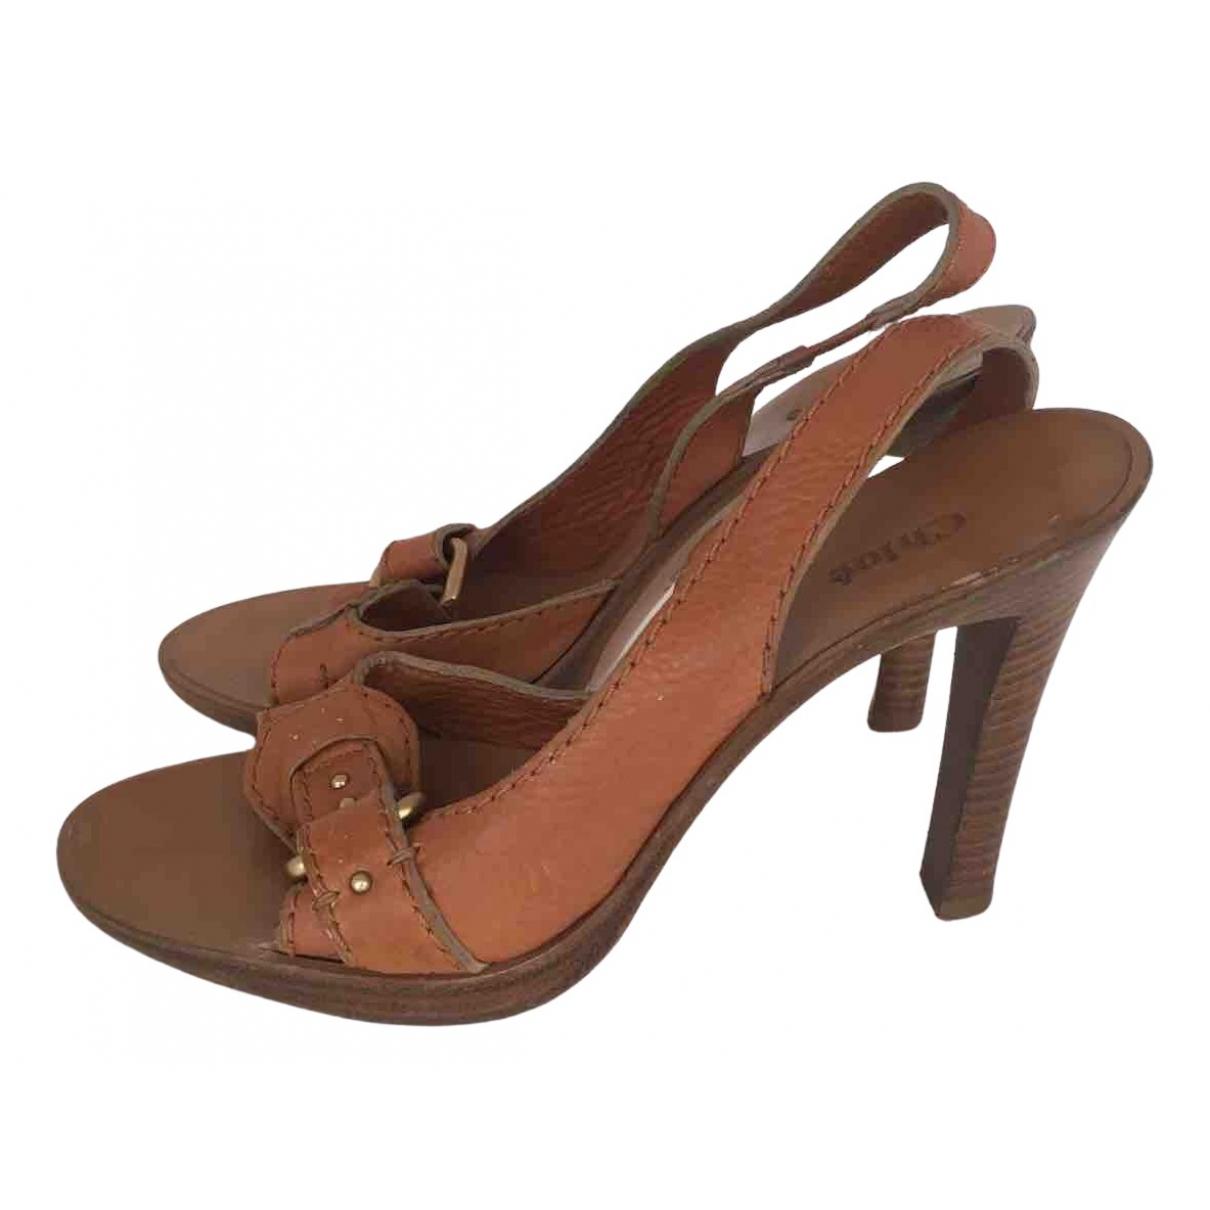 Chloé N Camel Leather Sandals for Women 39.5 EU